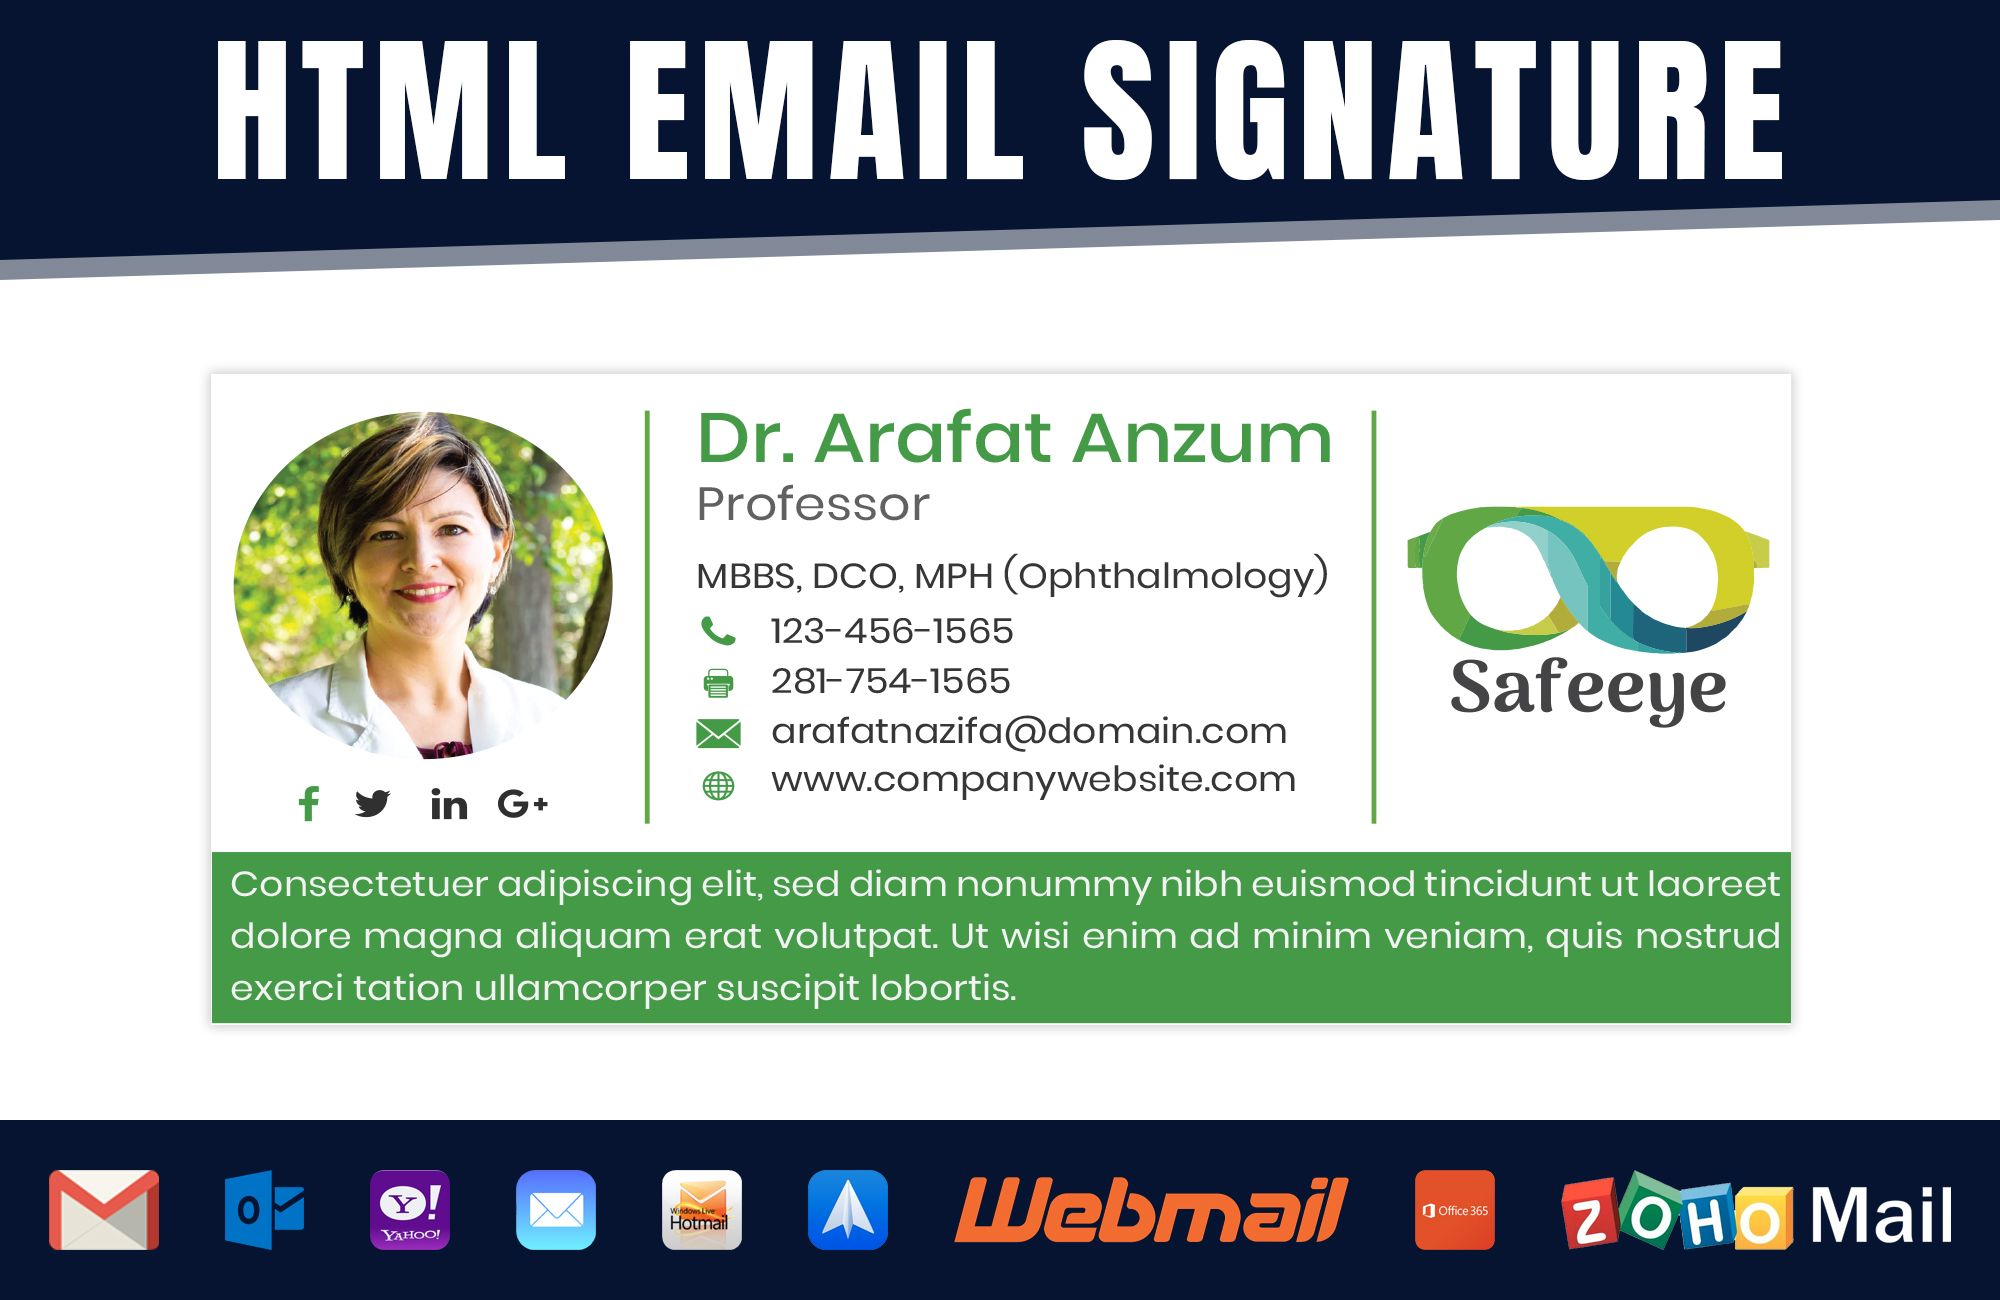 I can code a professional HTML email signature for Gmail